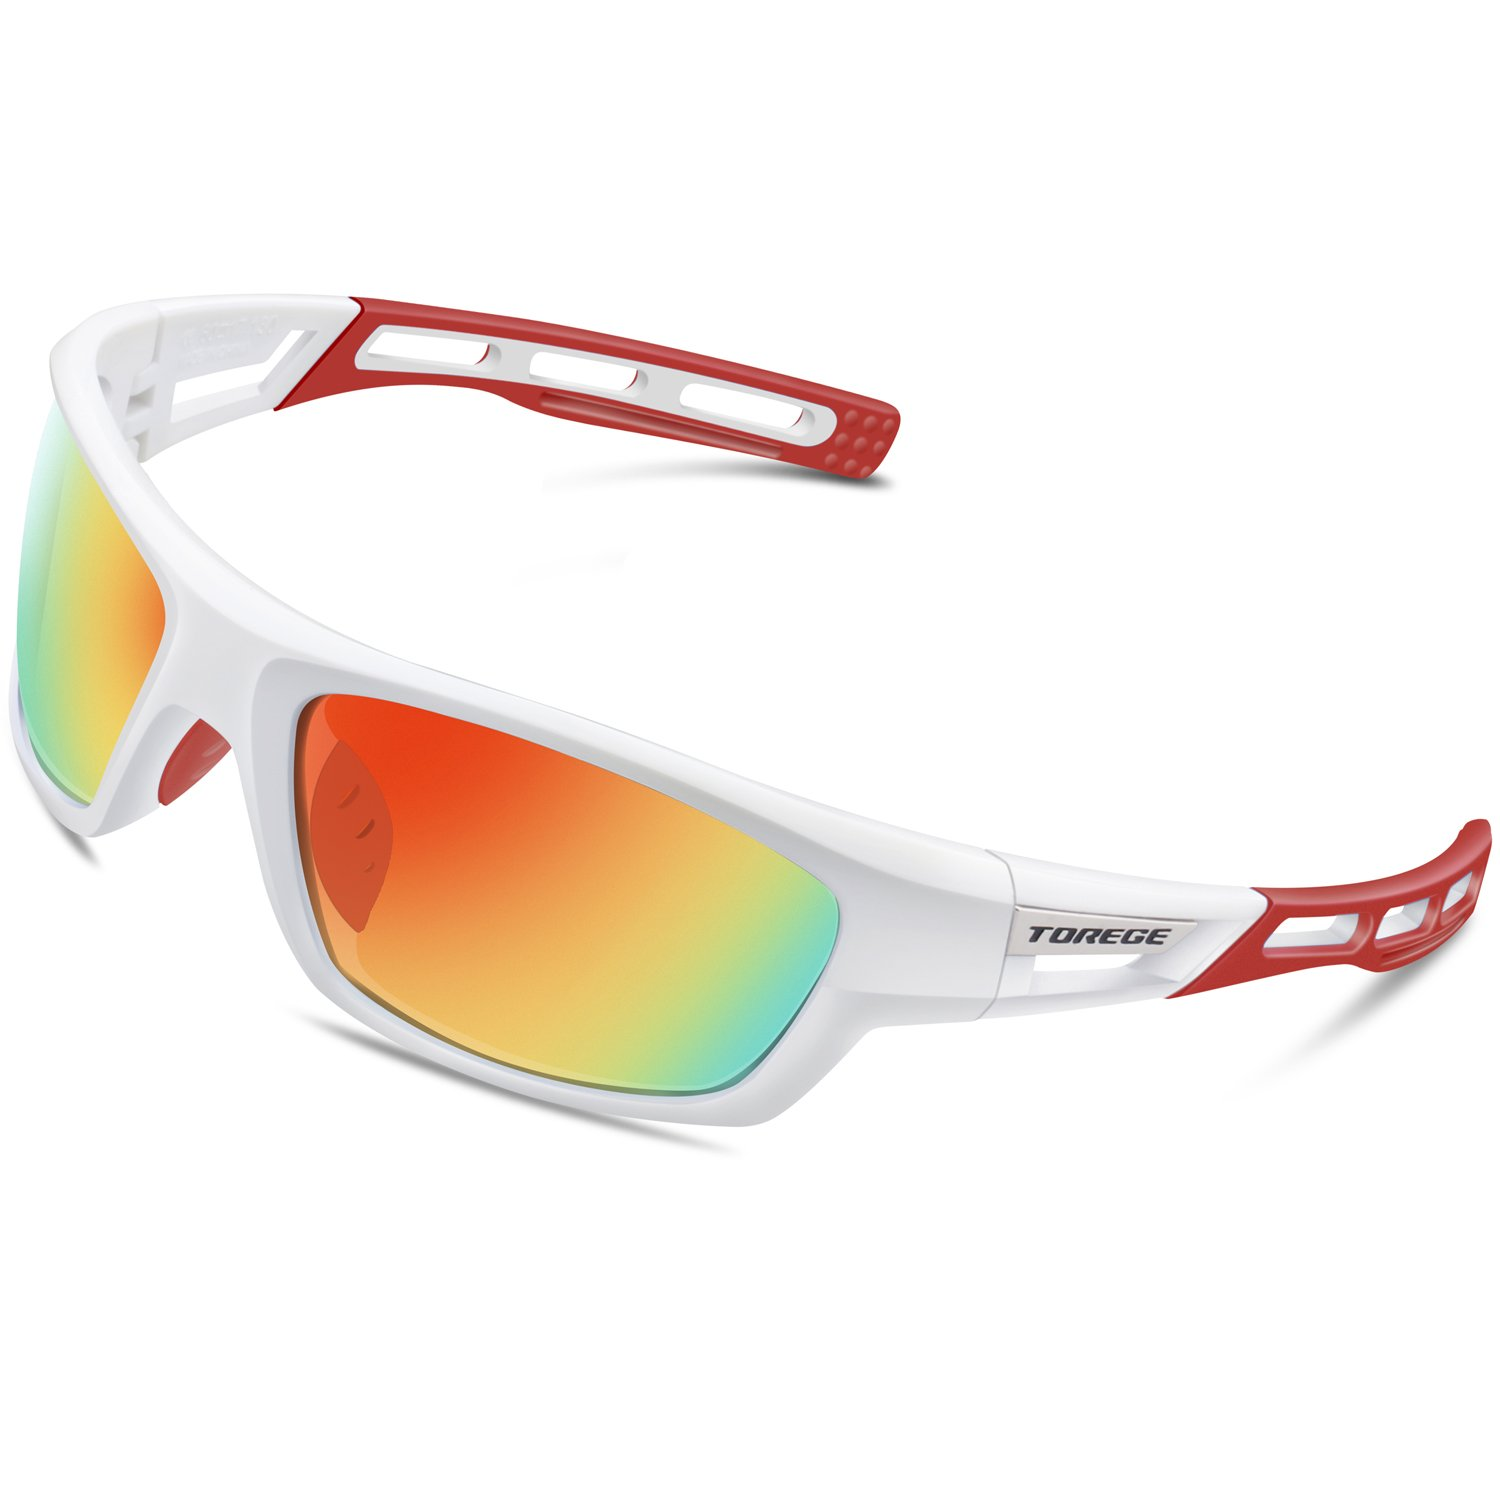 0f5b72c7aa TOREGE Polarized Sports Sunglasses for Men Women Cycling Running Driving  Fishing Golf Baseball Glasses EMS-TR90 Unbreakable Frame TR007 (WhiteRedRed  Lens)